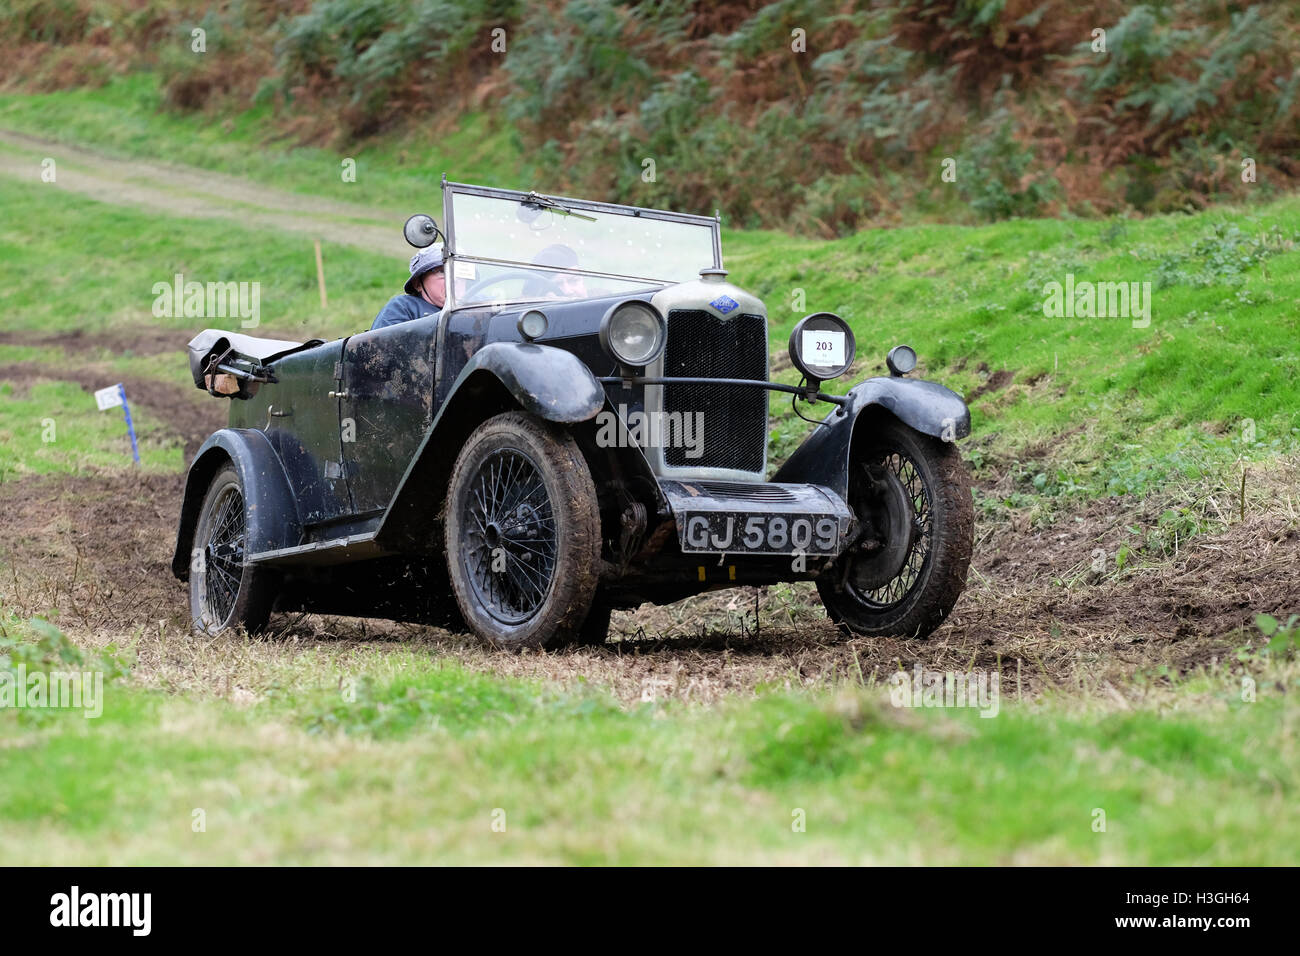 Badlands Farm, Kinnerton, Powys, Wales, UK - Saturday 8th October 2016 - Competitors in a 1930 Riley 9 Tourer take - Stock Image